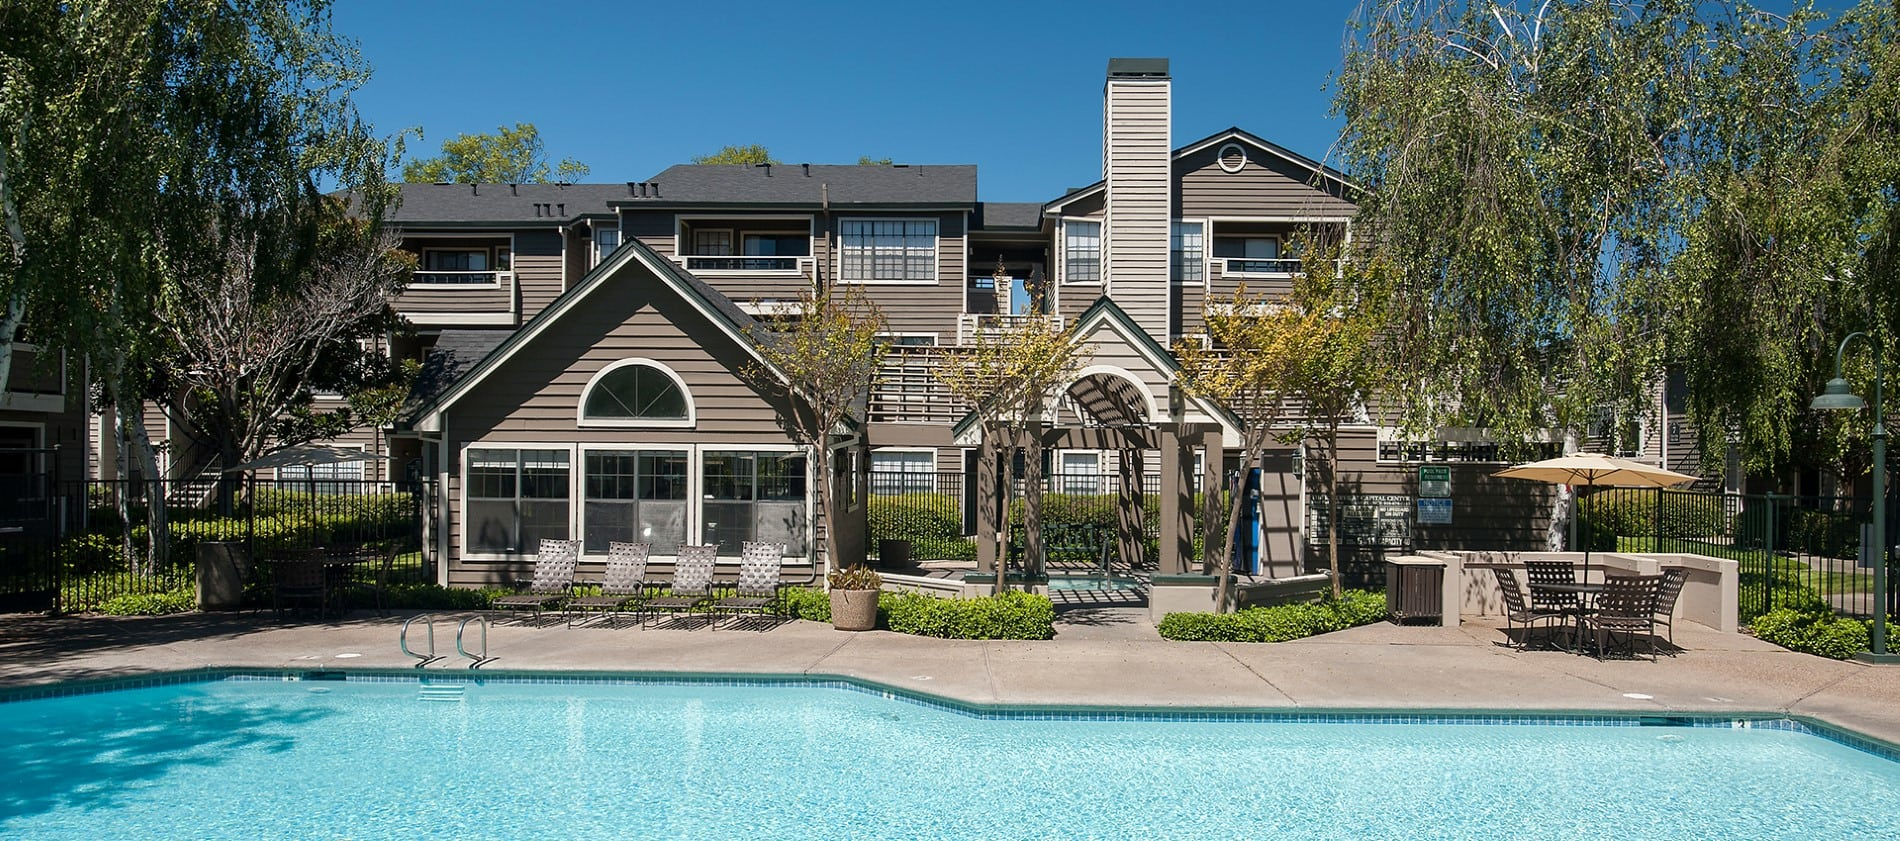 Expansive Pool Deck at Reserve at Capital Center Apartment Homes in Rancho Cordova, CA